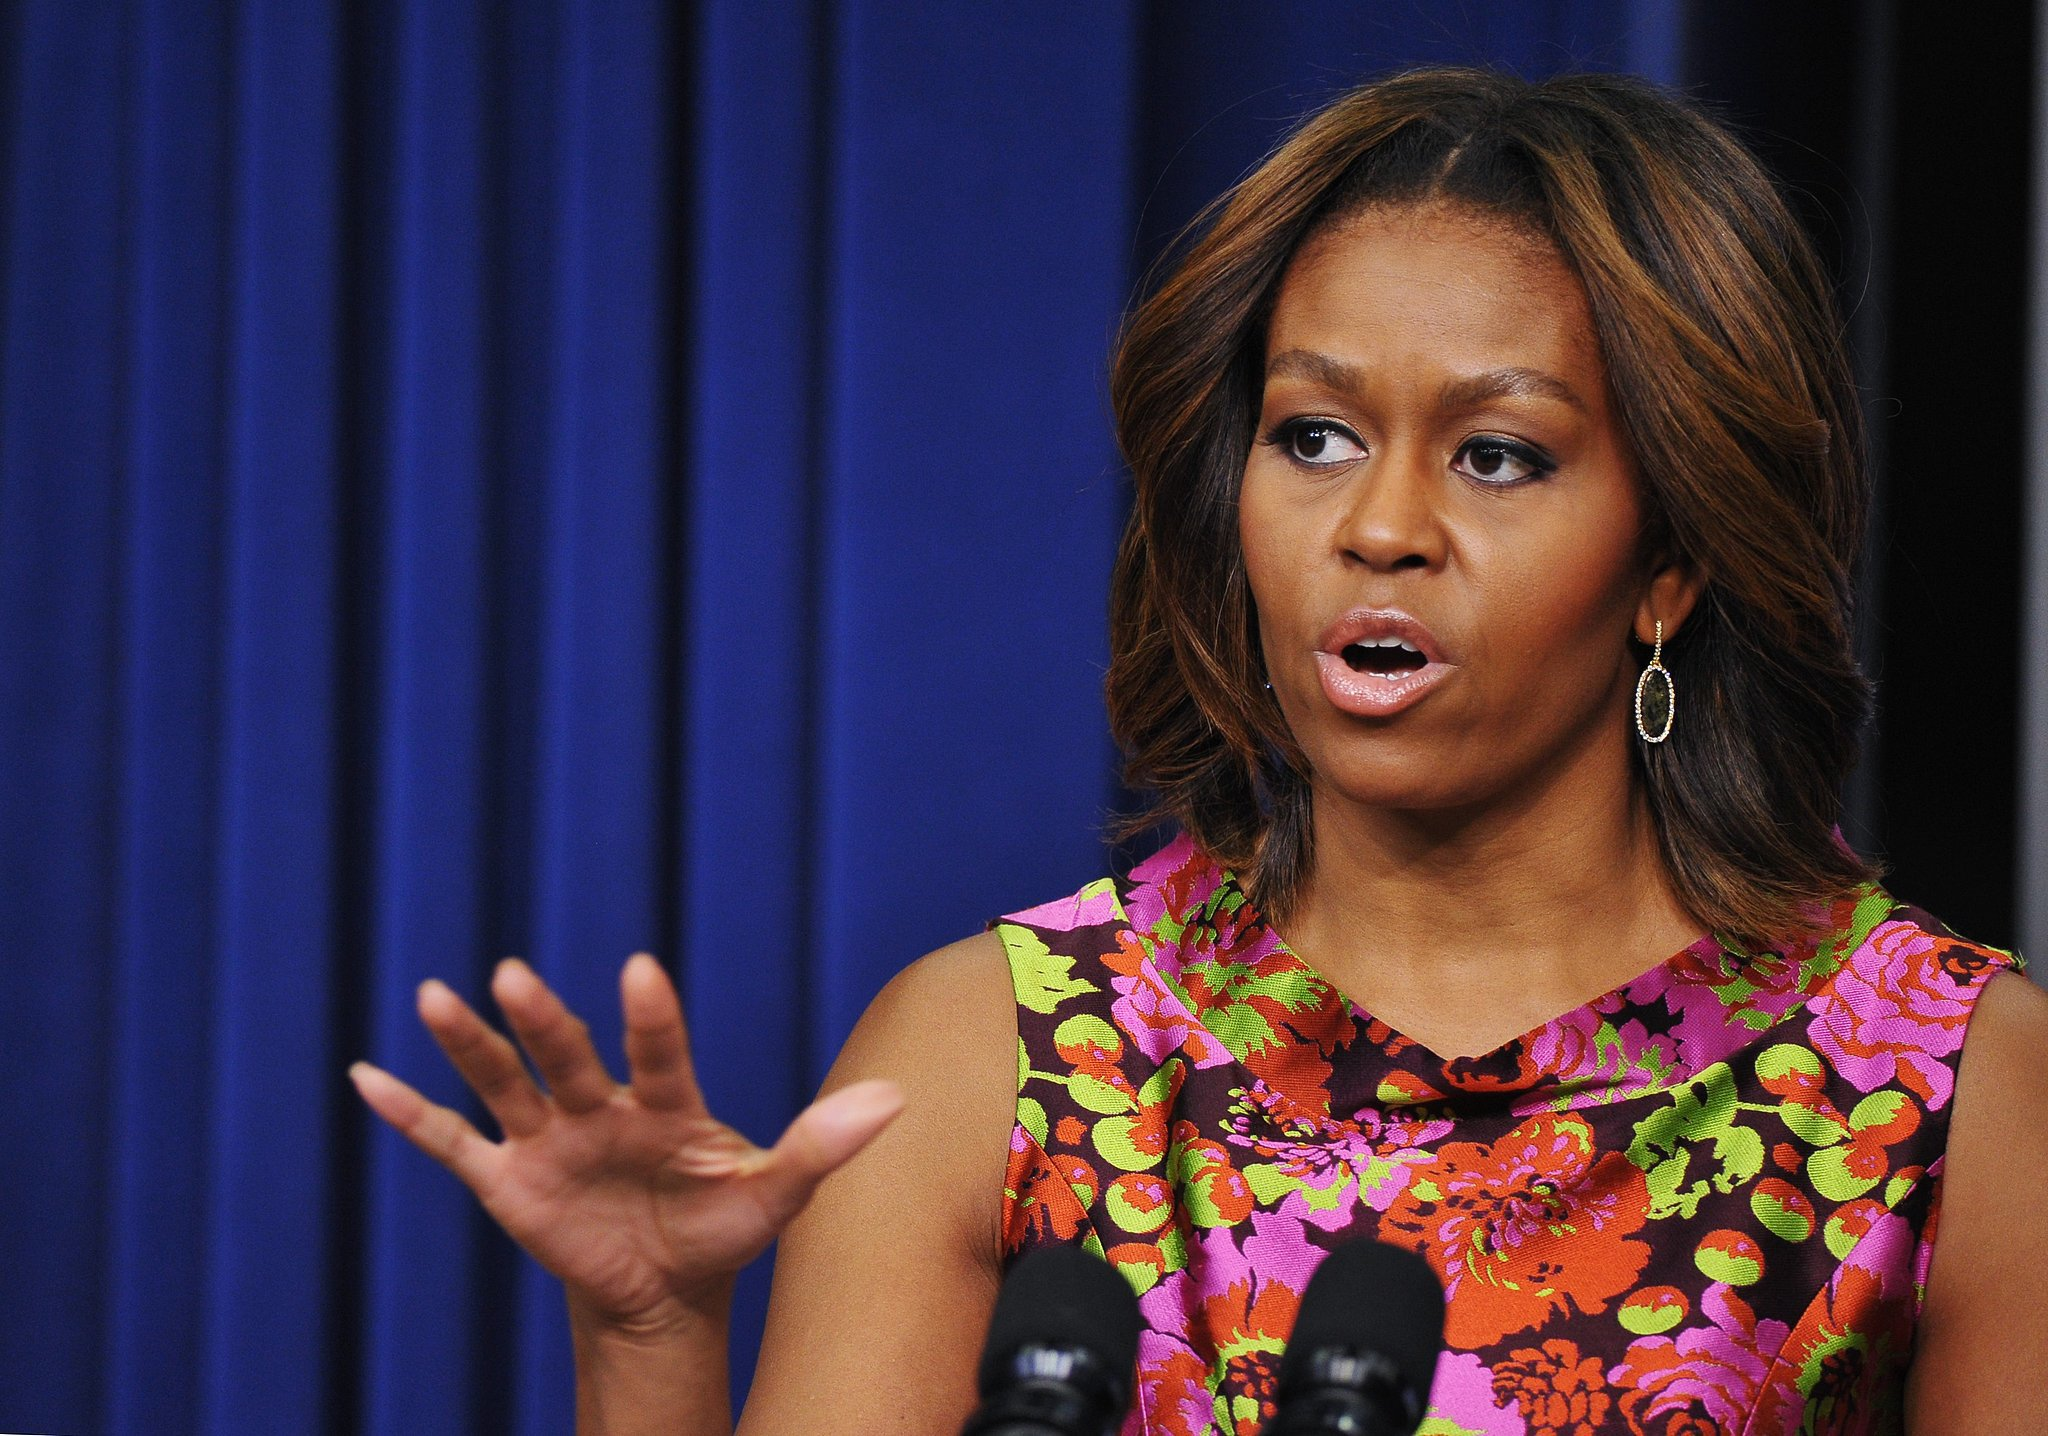 Michelle Obama touched on the importance of Black History Month at the event.